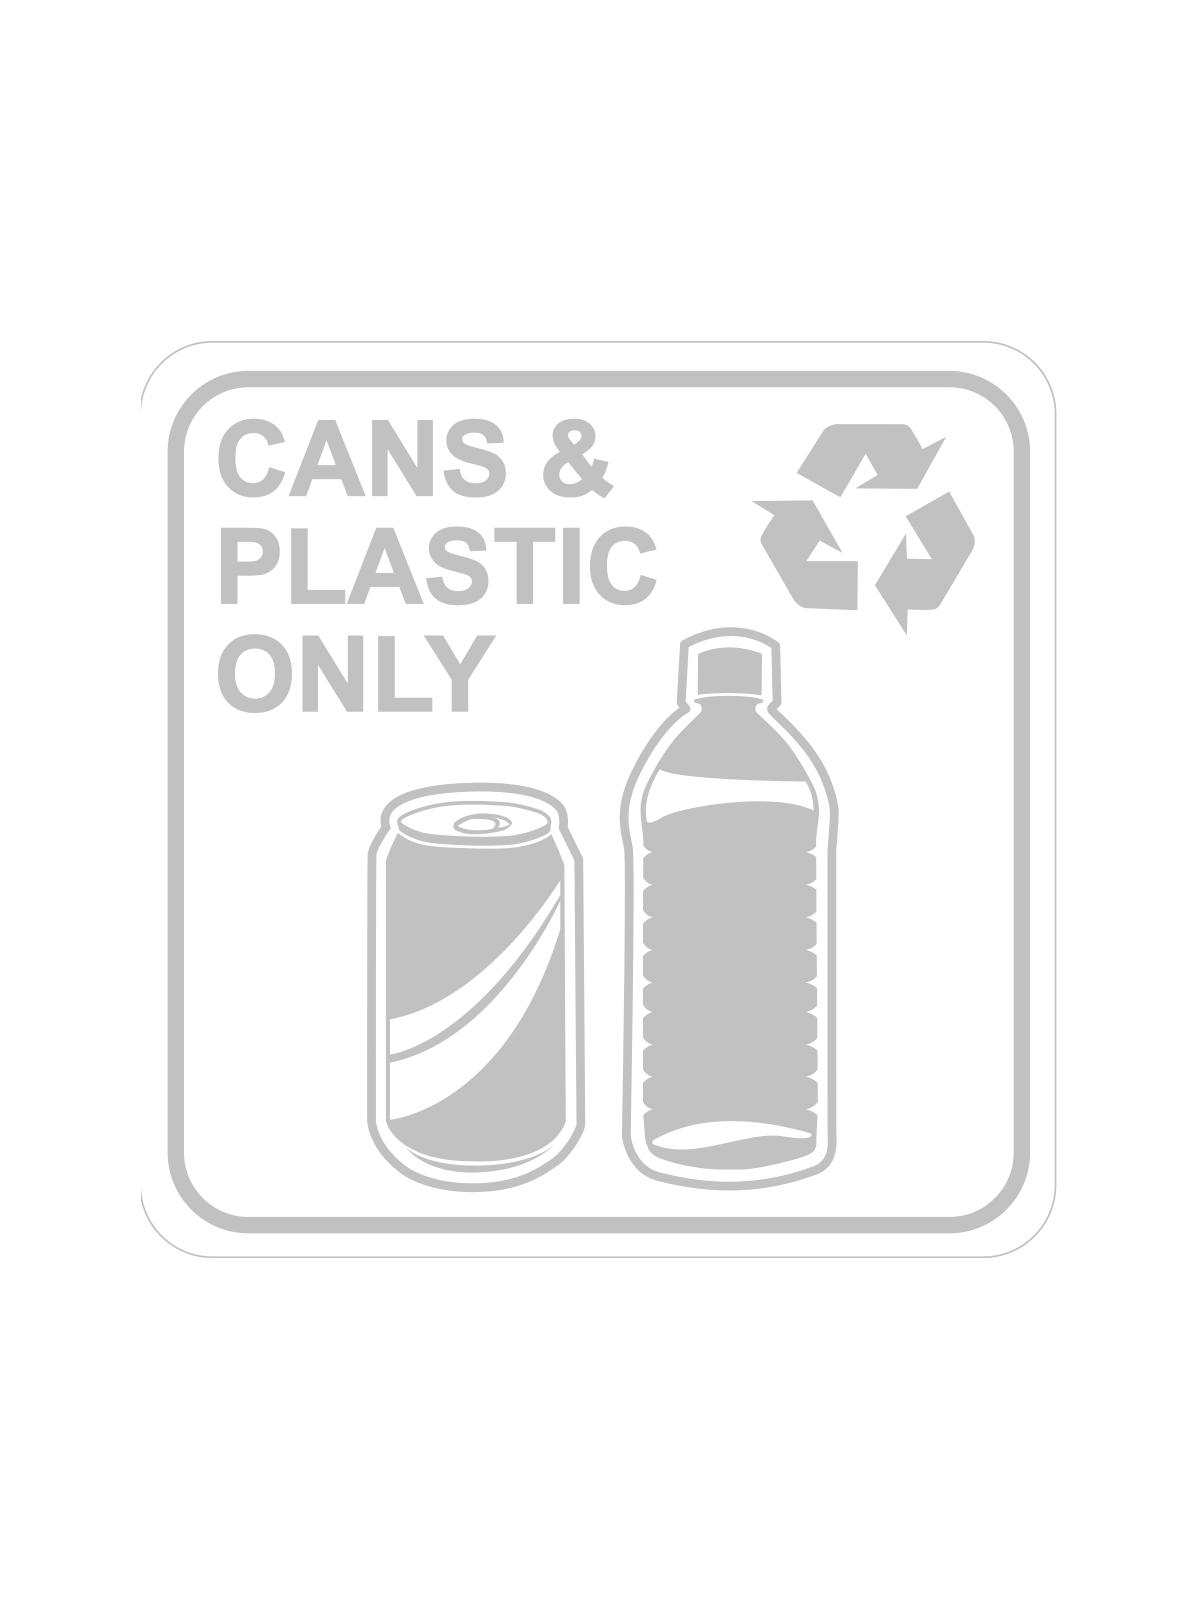 SQUARE LABEL CANS & PLASTIC ONLY